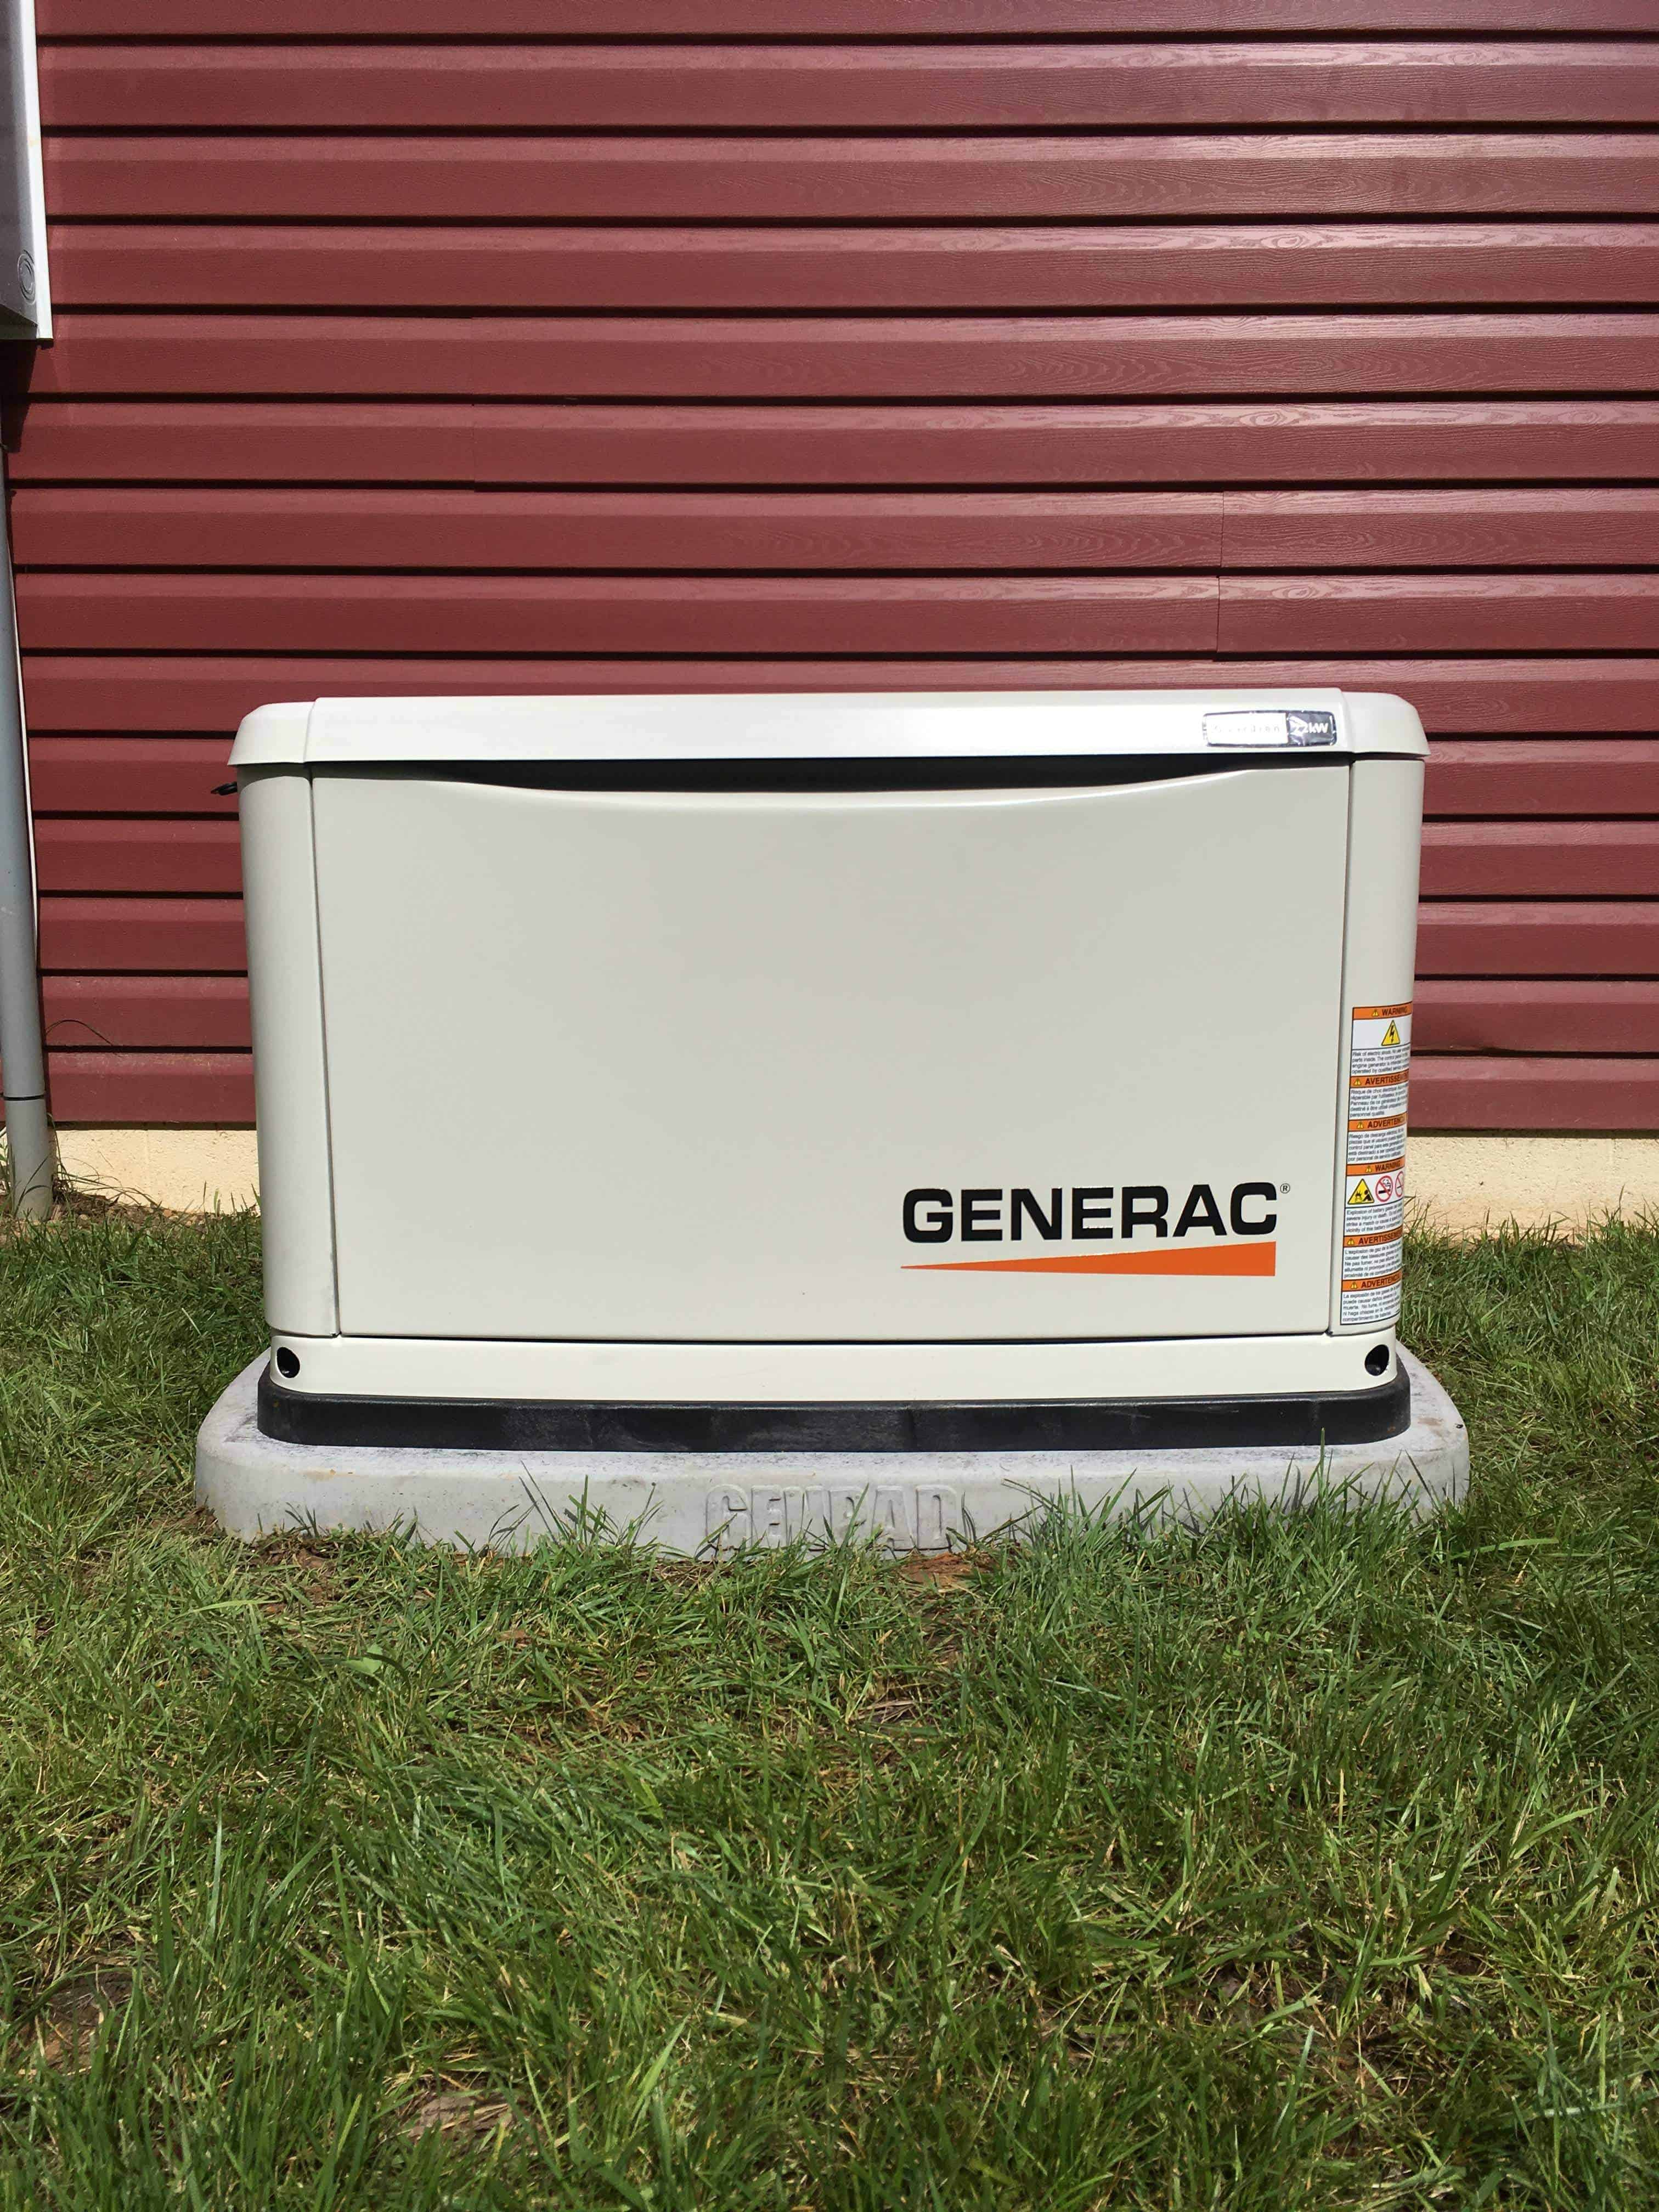 Generac Automatic Standby Generator Louisa County